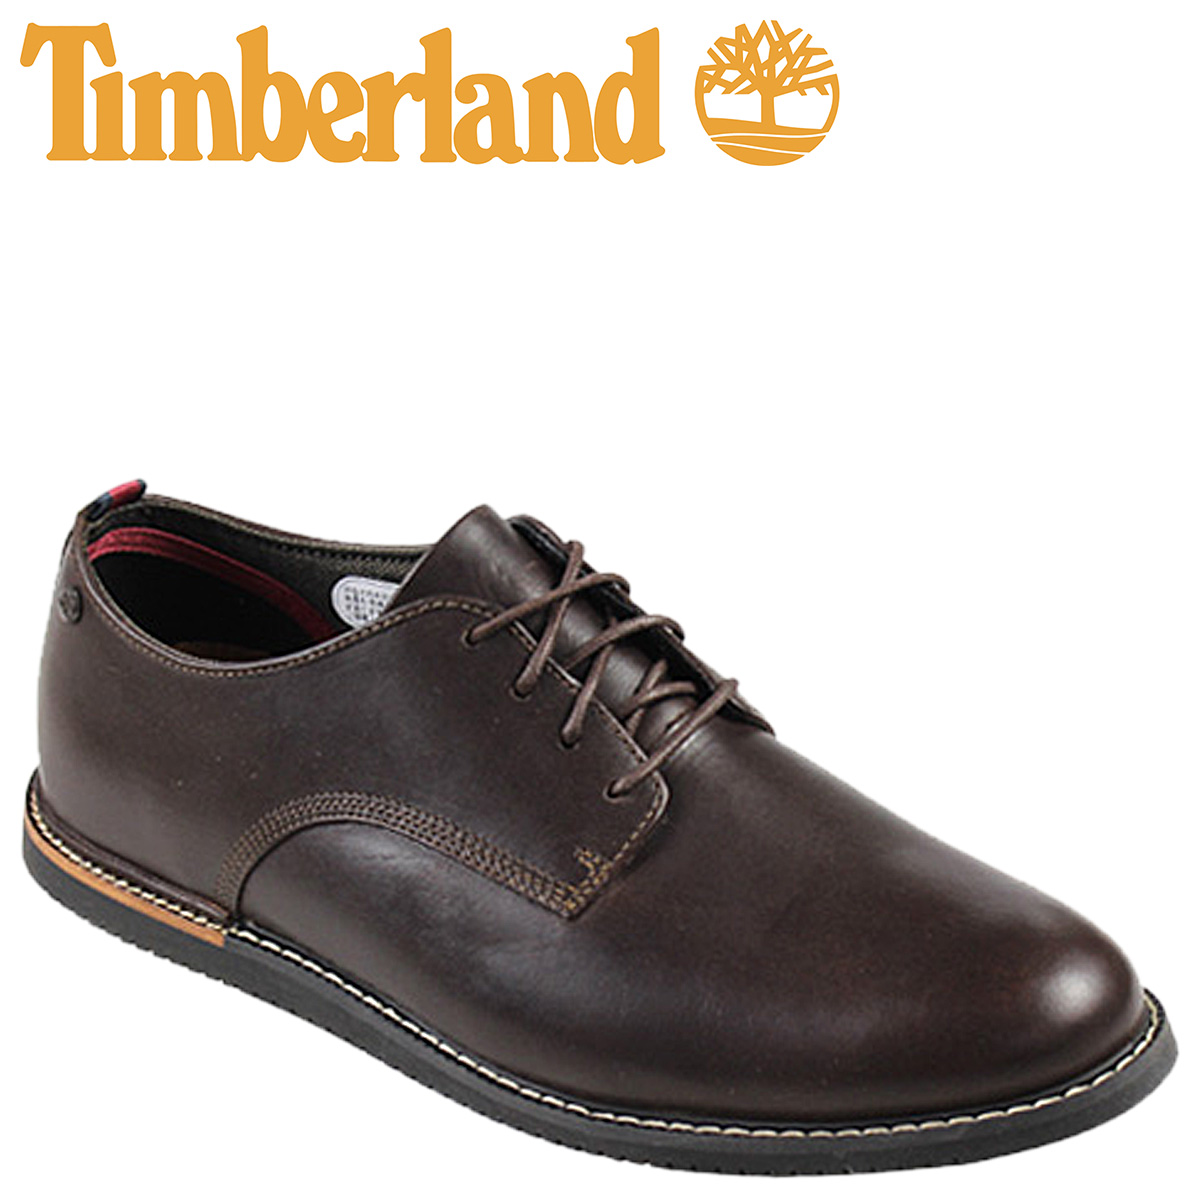 5521A Brown men's Oxford shoes and leather EK BROOK PARK WEDGE OX wedge  Timberland Earthkeepers Timberland Brook Park [3 / 24 new in stock]  [regular]